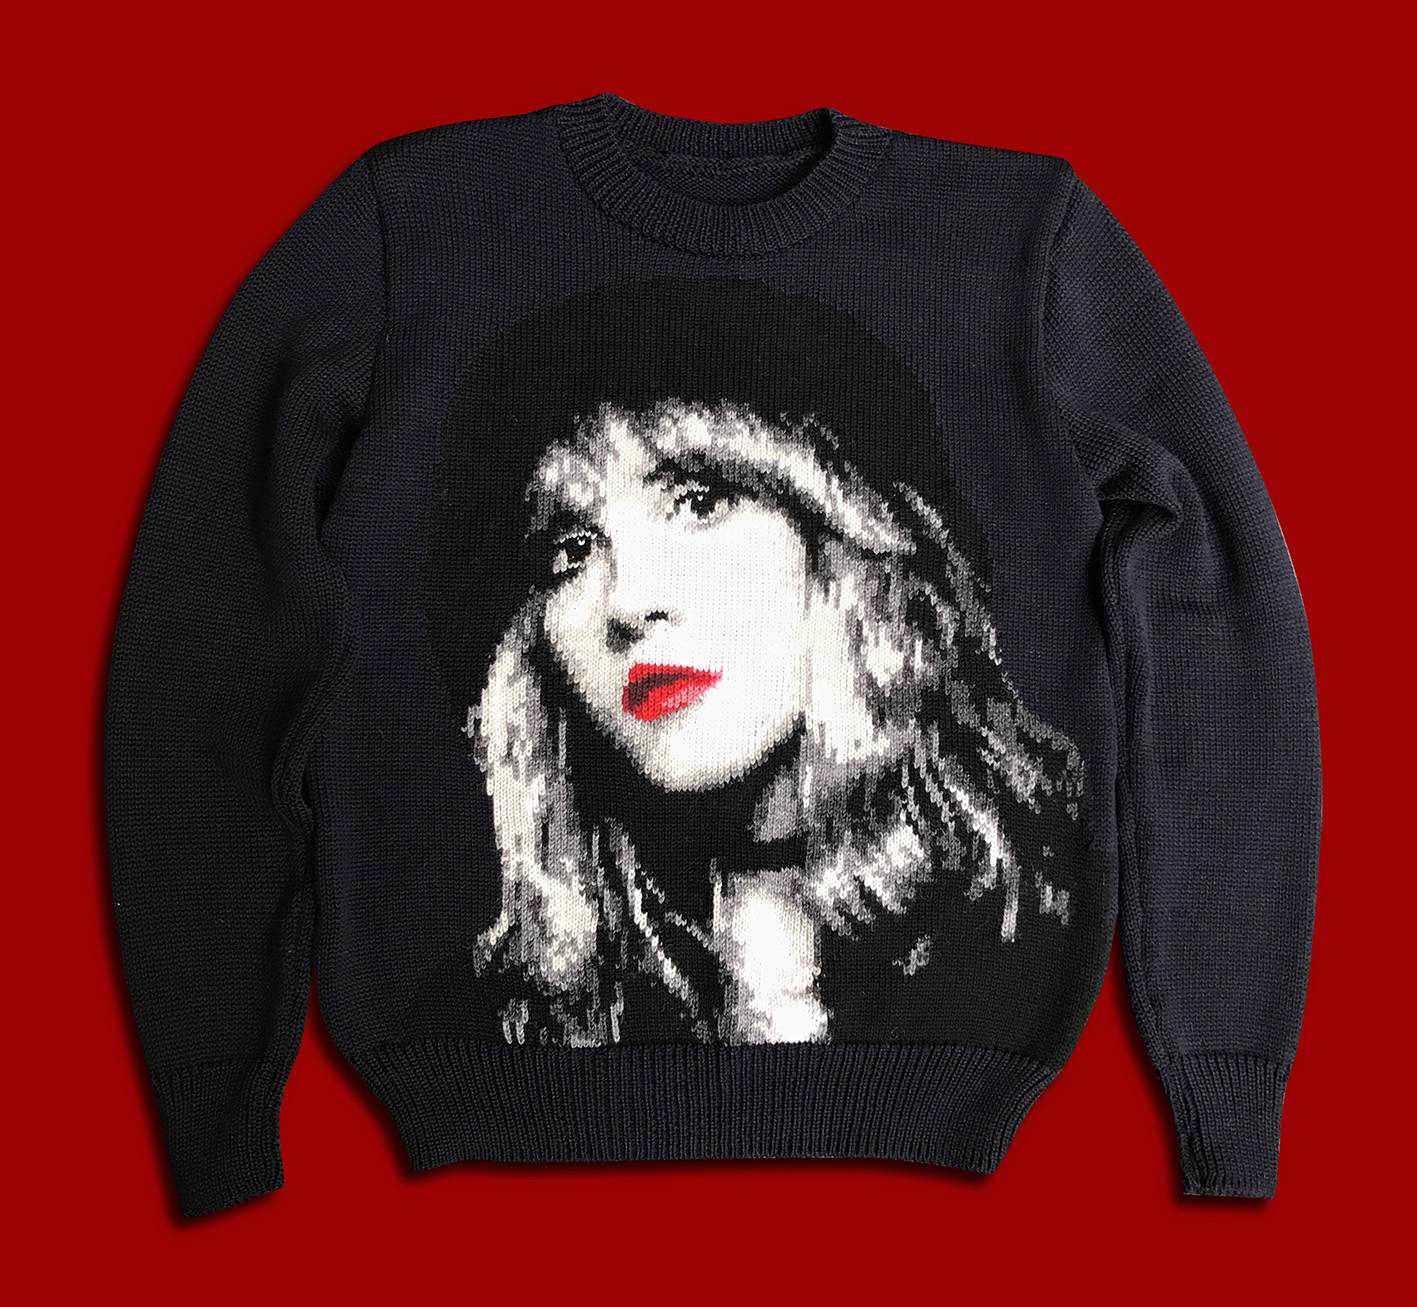 Stevie Nicks sweater